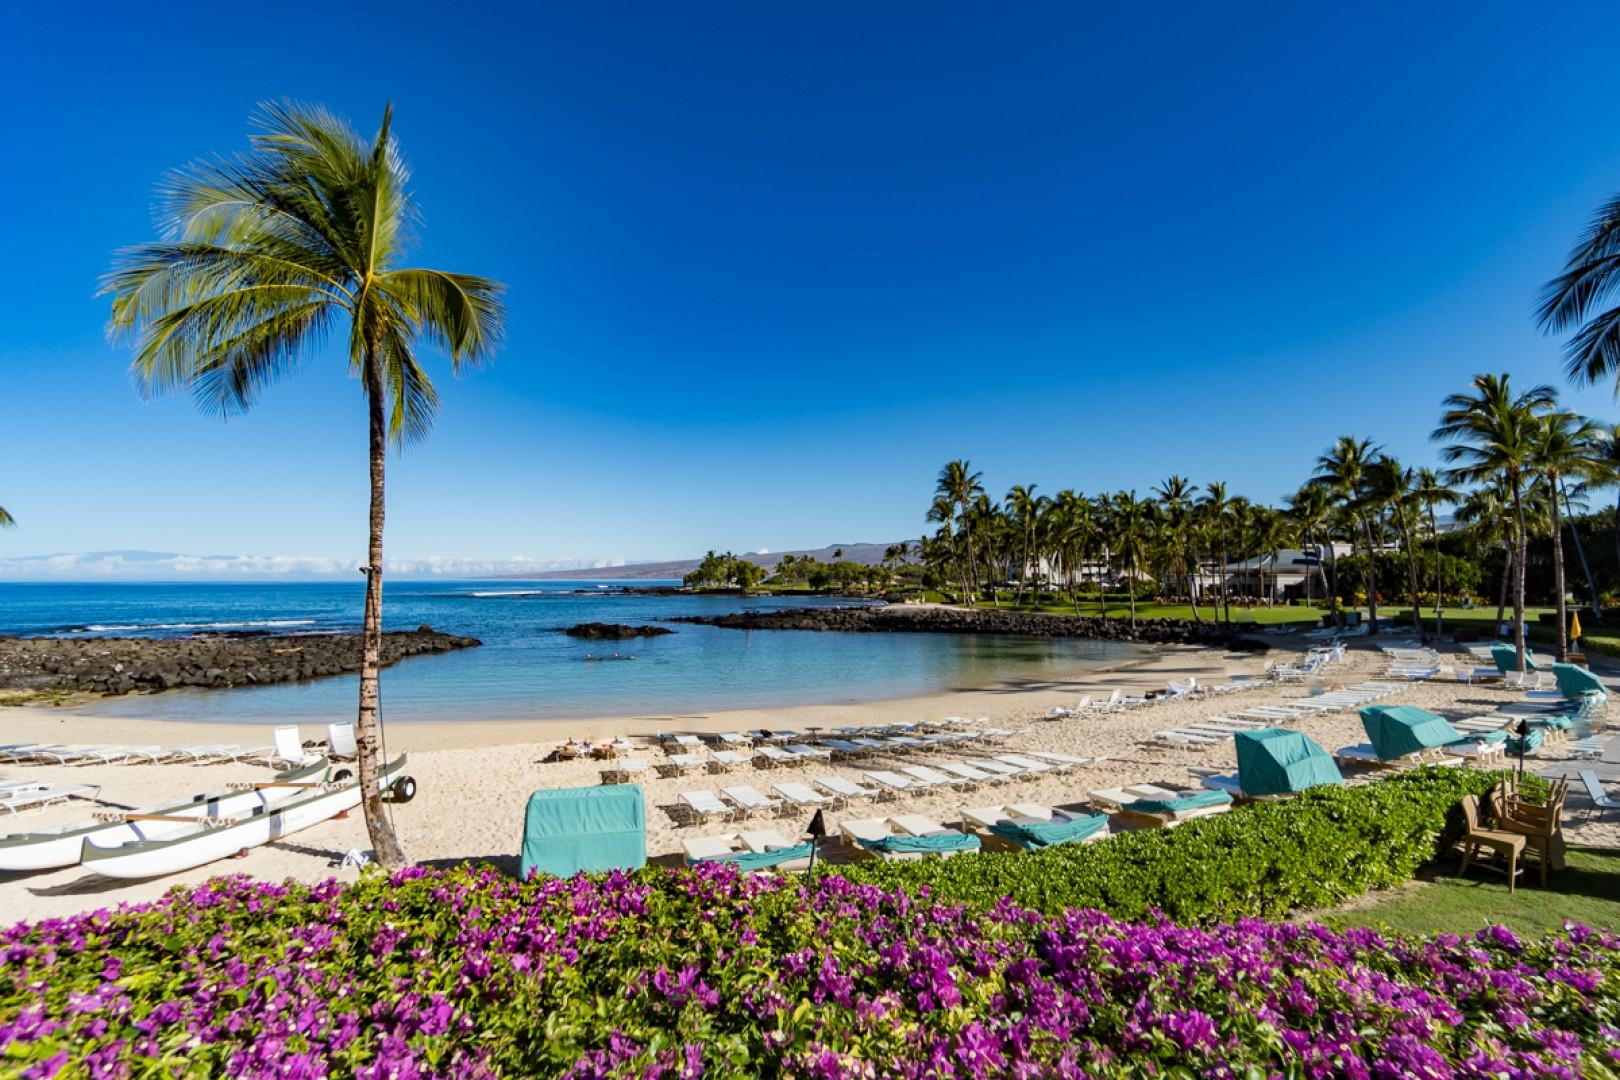 Beach access from Pauoa Beach Club, situated next to the Fairmont Orchid